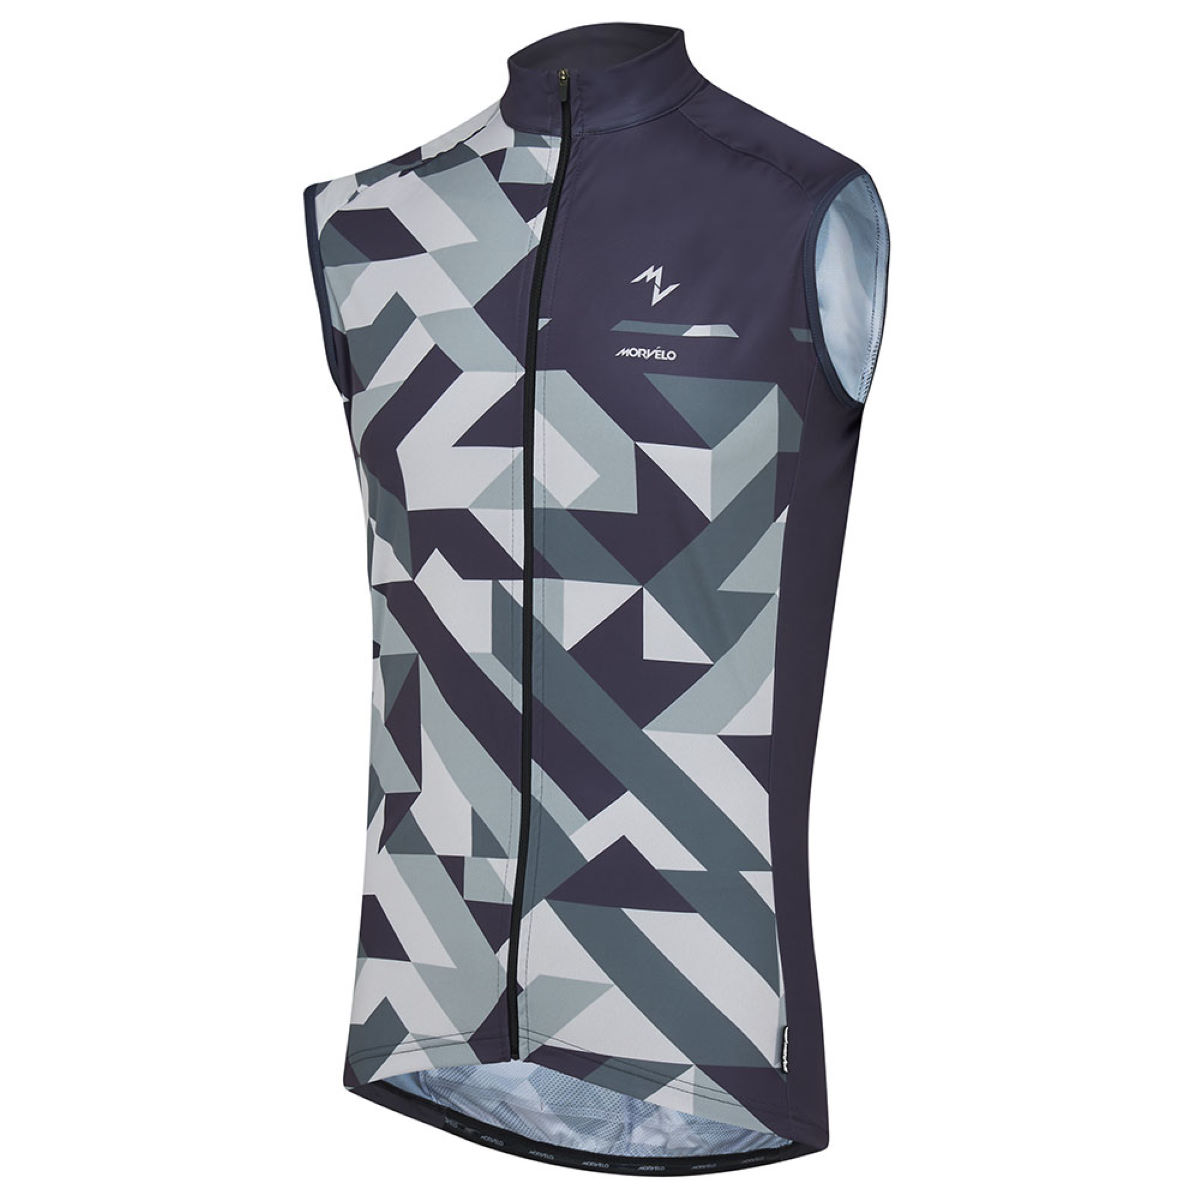 Gilet VTT Morvelo Winter Attack Covert (sans manches) - XS